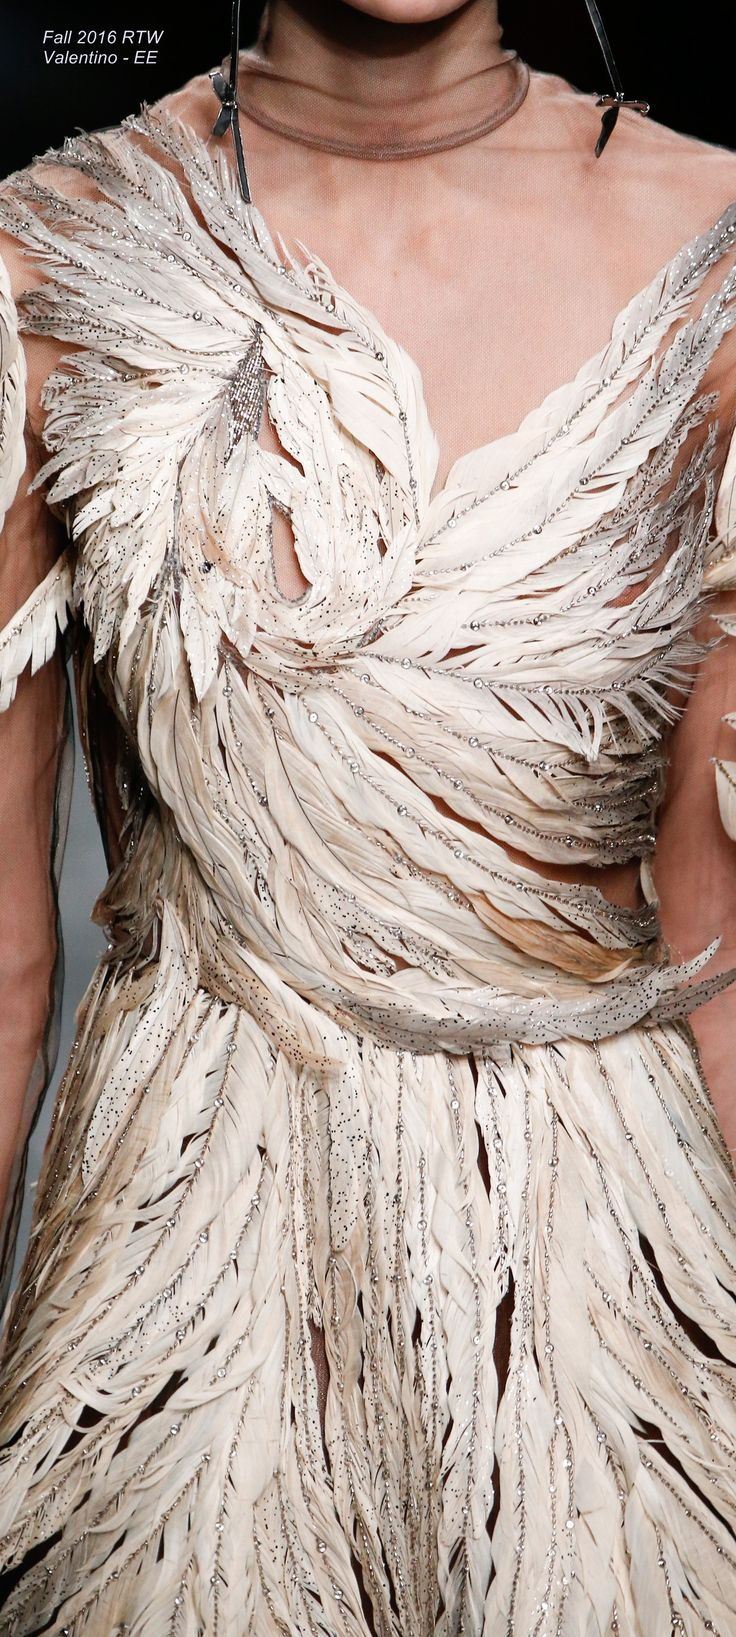 Fall 2016 Ready-to-Wear Valentino - EE